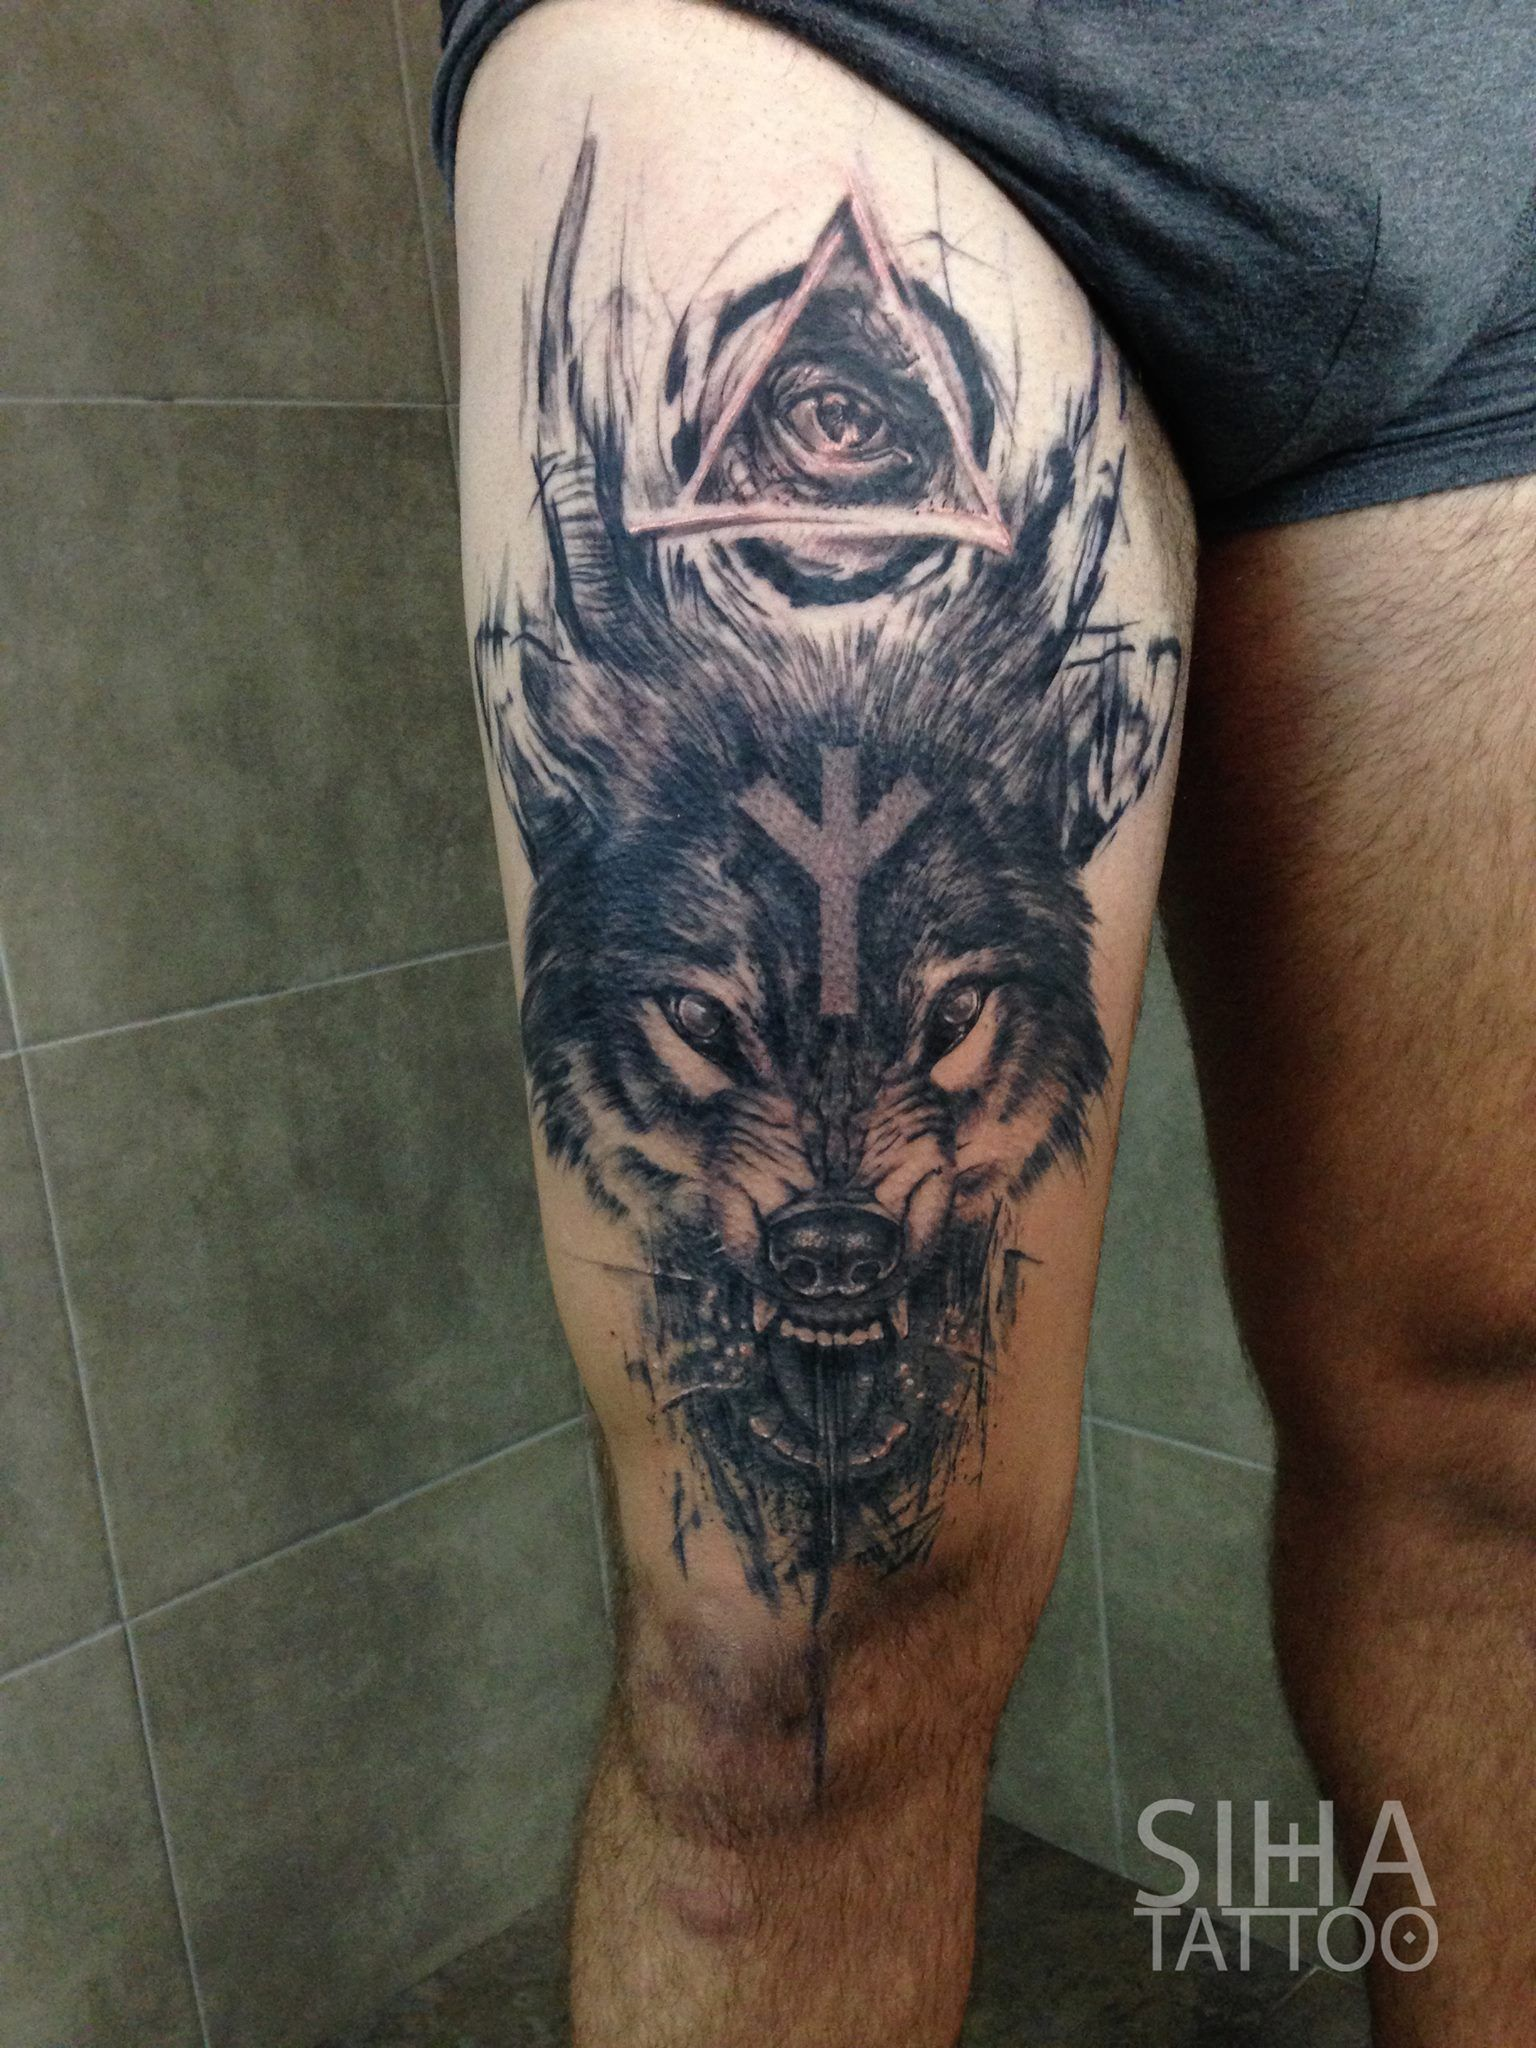 wolf by mocho at siha tattoo barcelona tatouages. Black Bedroom Furniture Sets. Home Design Ideas